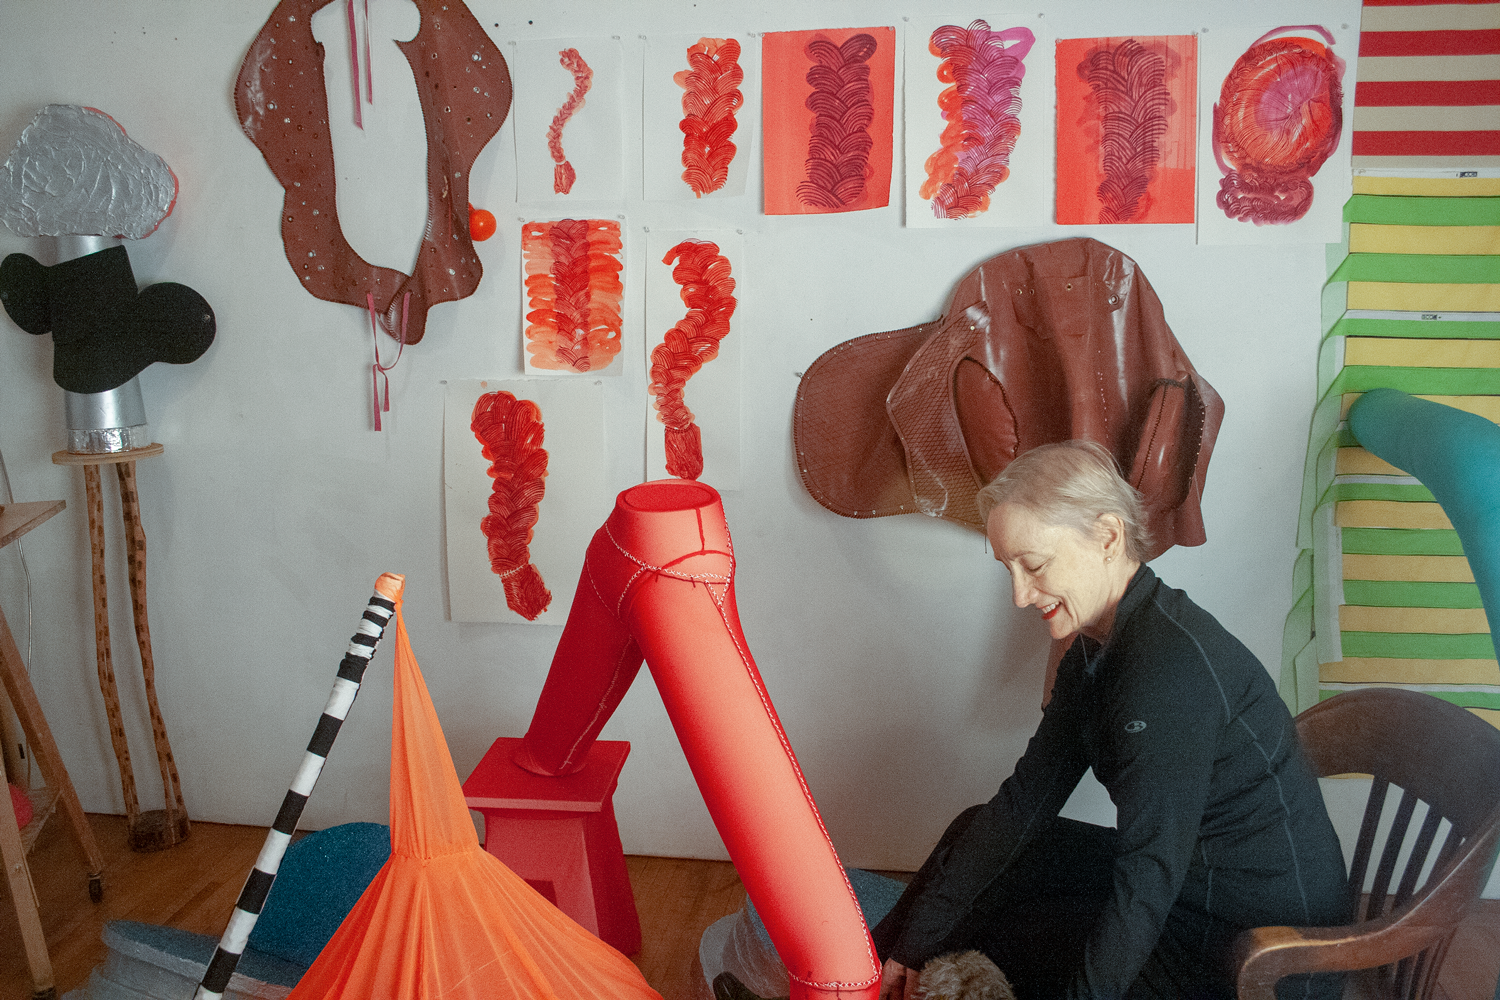 An older woman seated on the right, looking left and down. On the wall are vibrant red-orange drawings of a variety of shapes. In front of the artist are sculptures in similar shapes and red tones with smooth surfaces. The artist looks down and smiles.